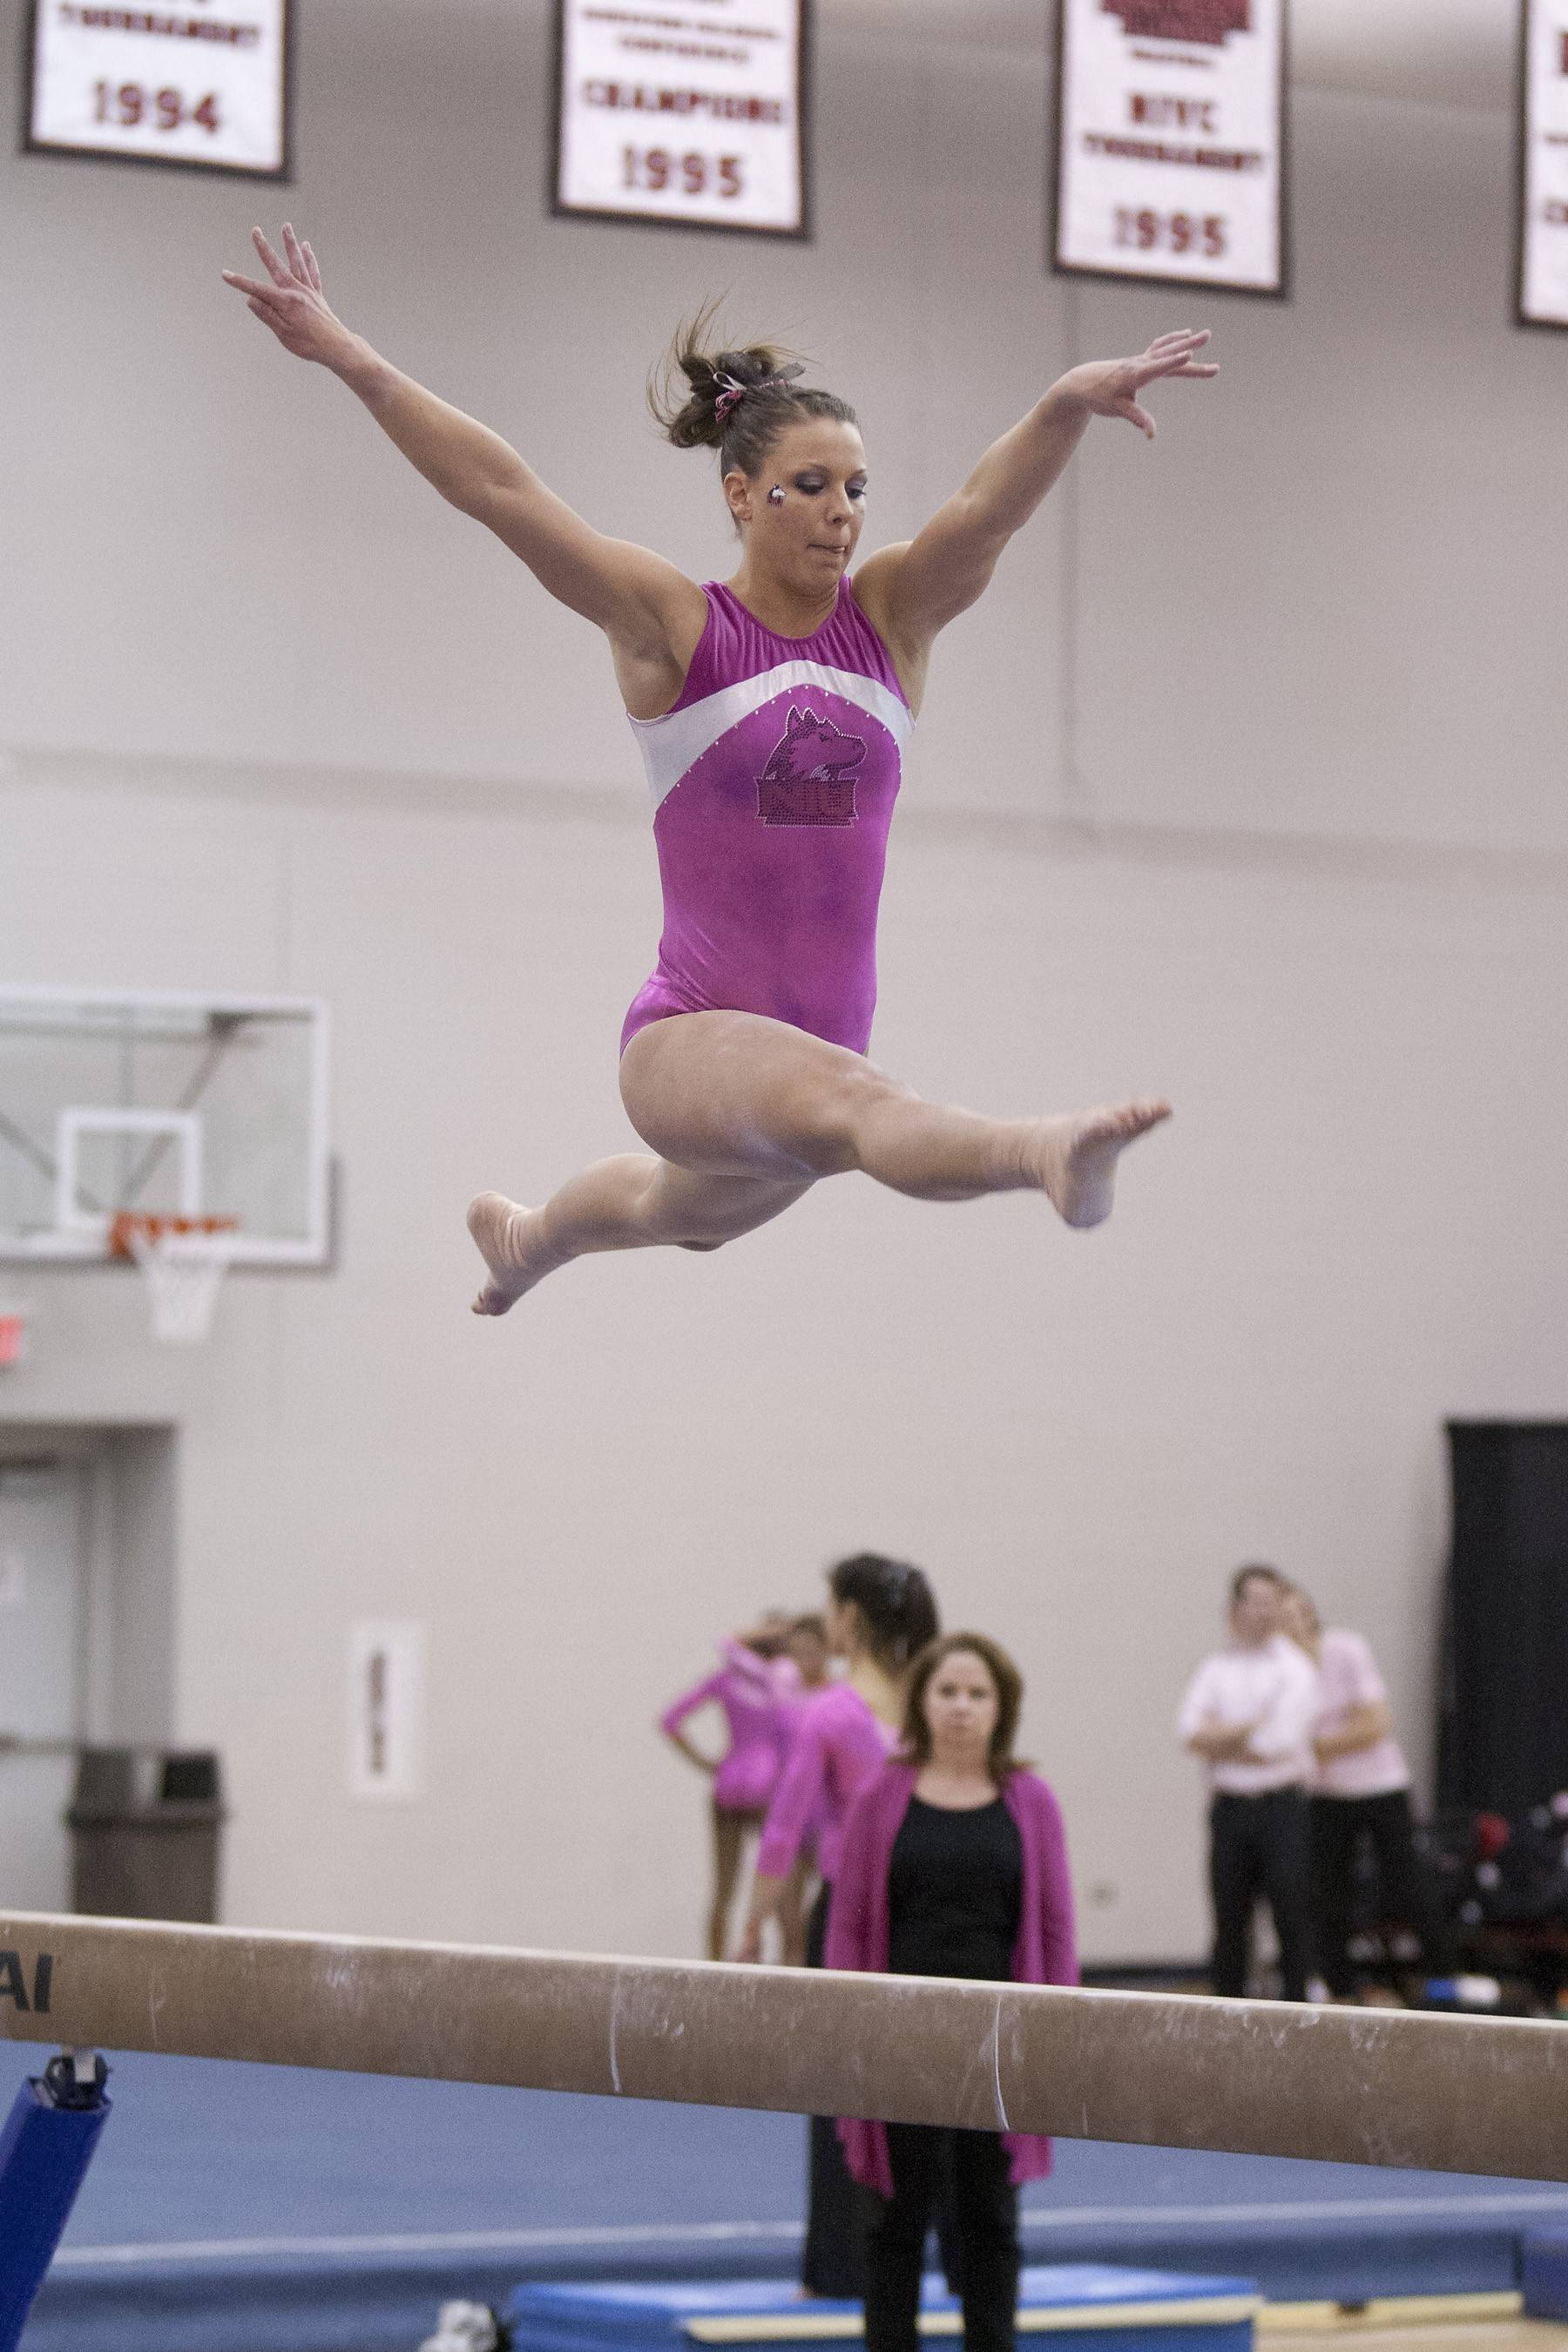 Photo courtesy of NIU AthleticsNorthern Illinois all-around gymnast Kim Gotlund, a Warren High School grad, finished her career with several school records.